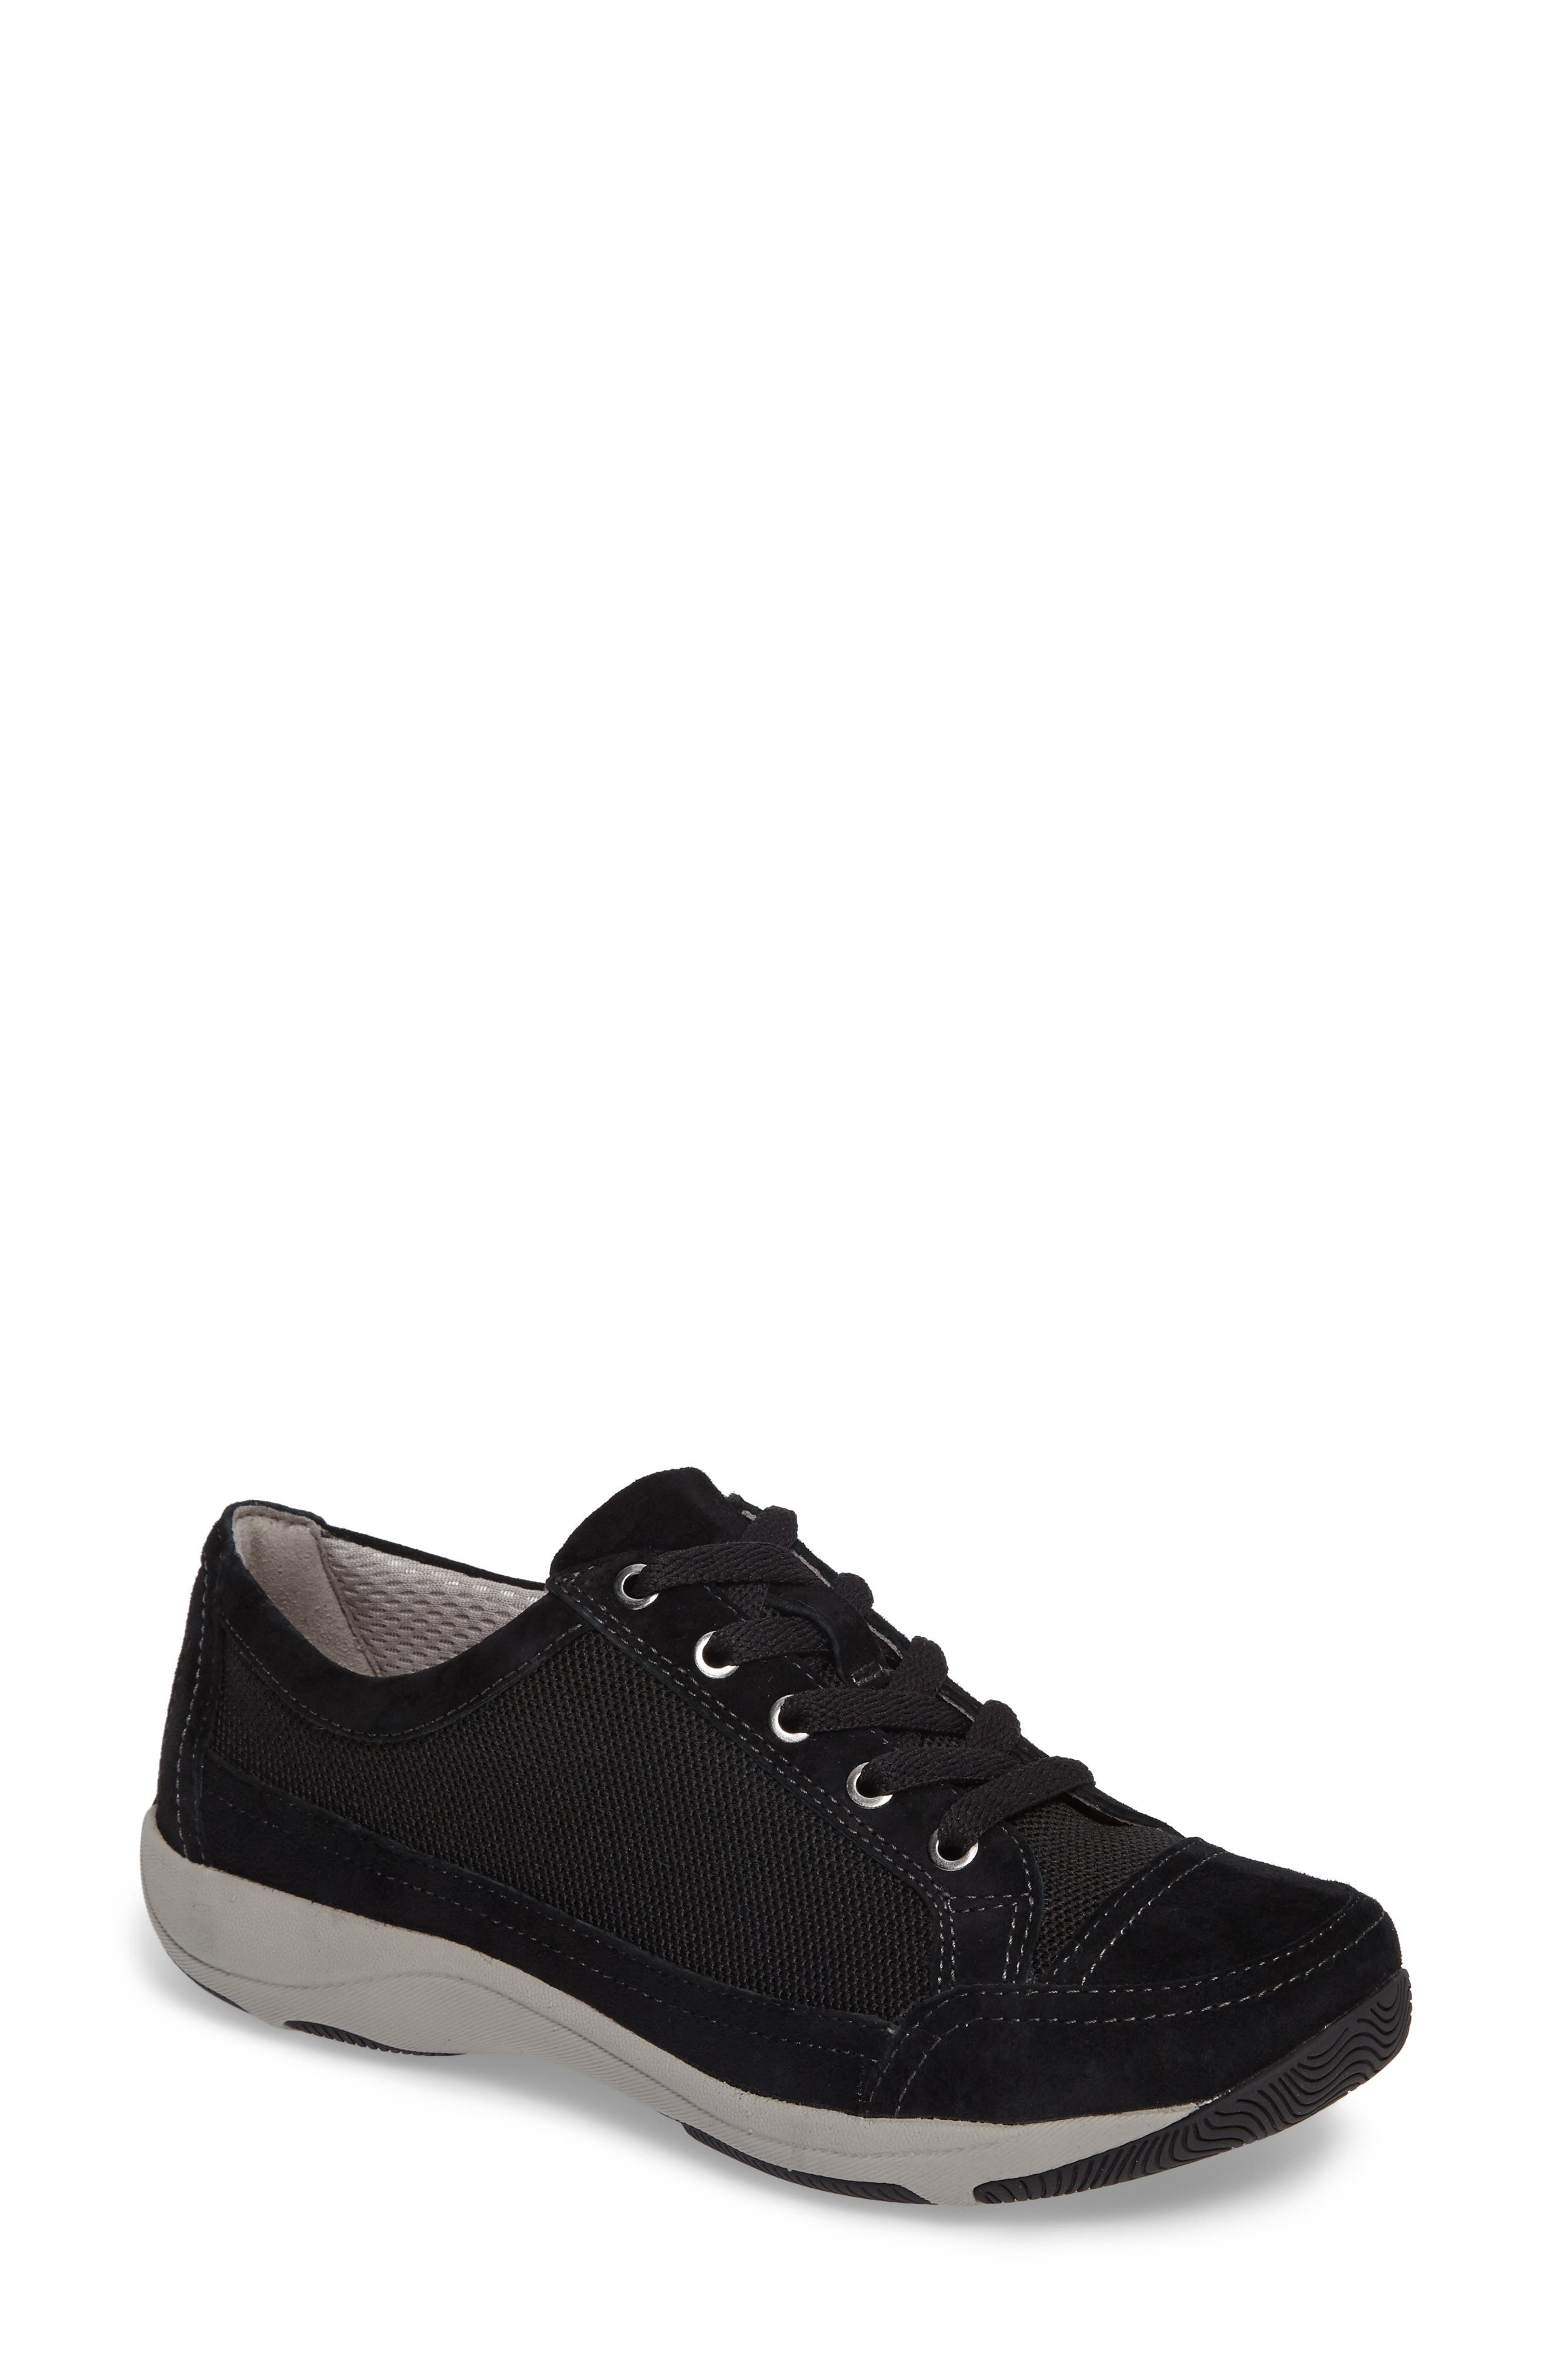 Harmony Sneaker,                             Main thumbnail 1, color,                             Black Suede